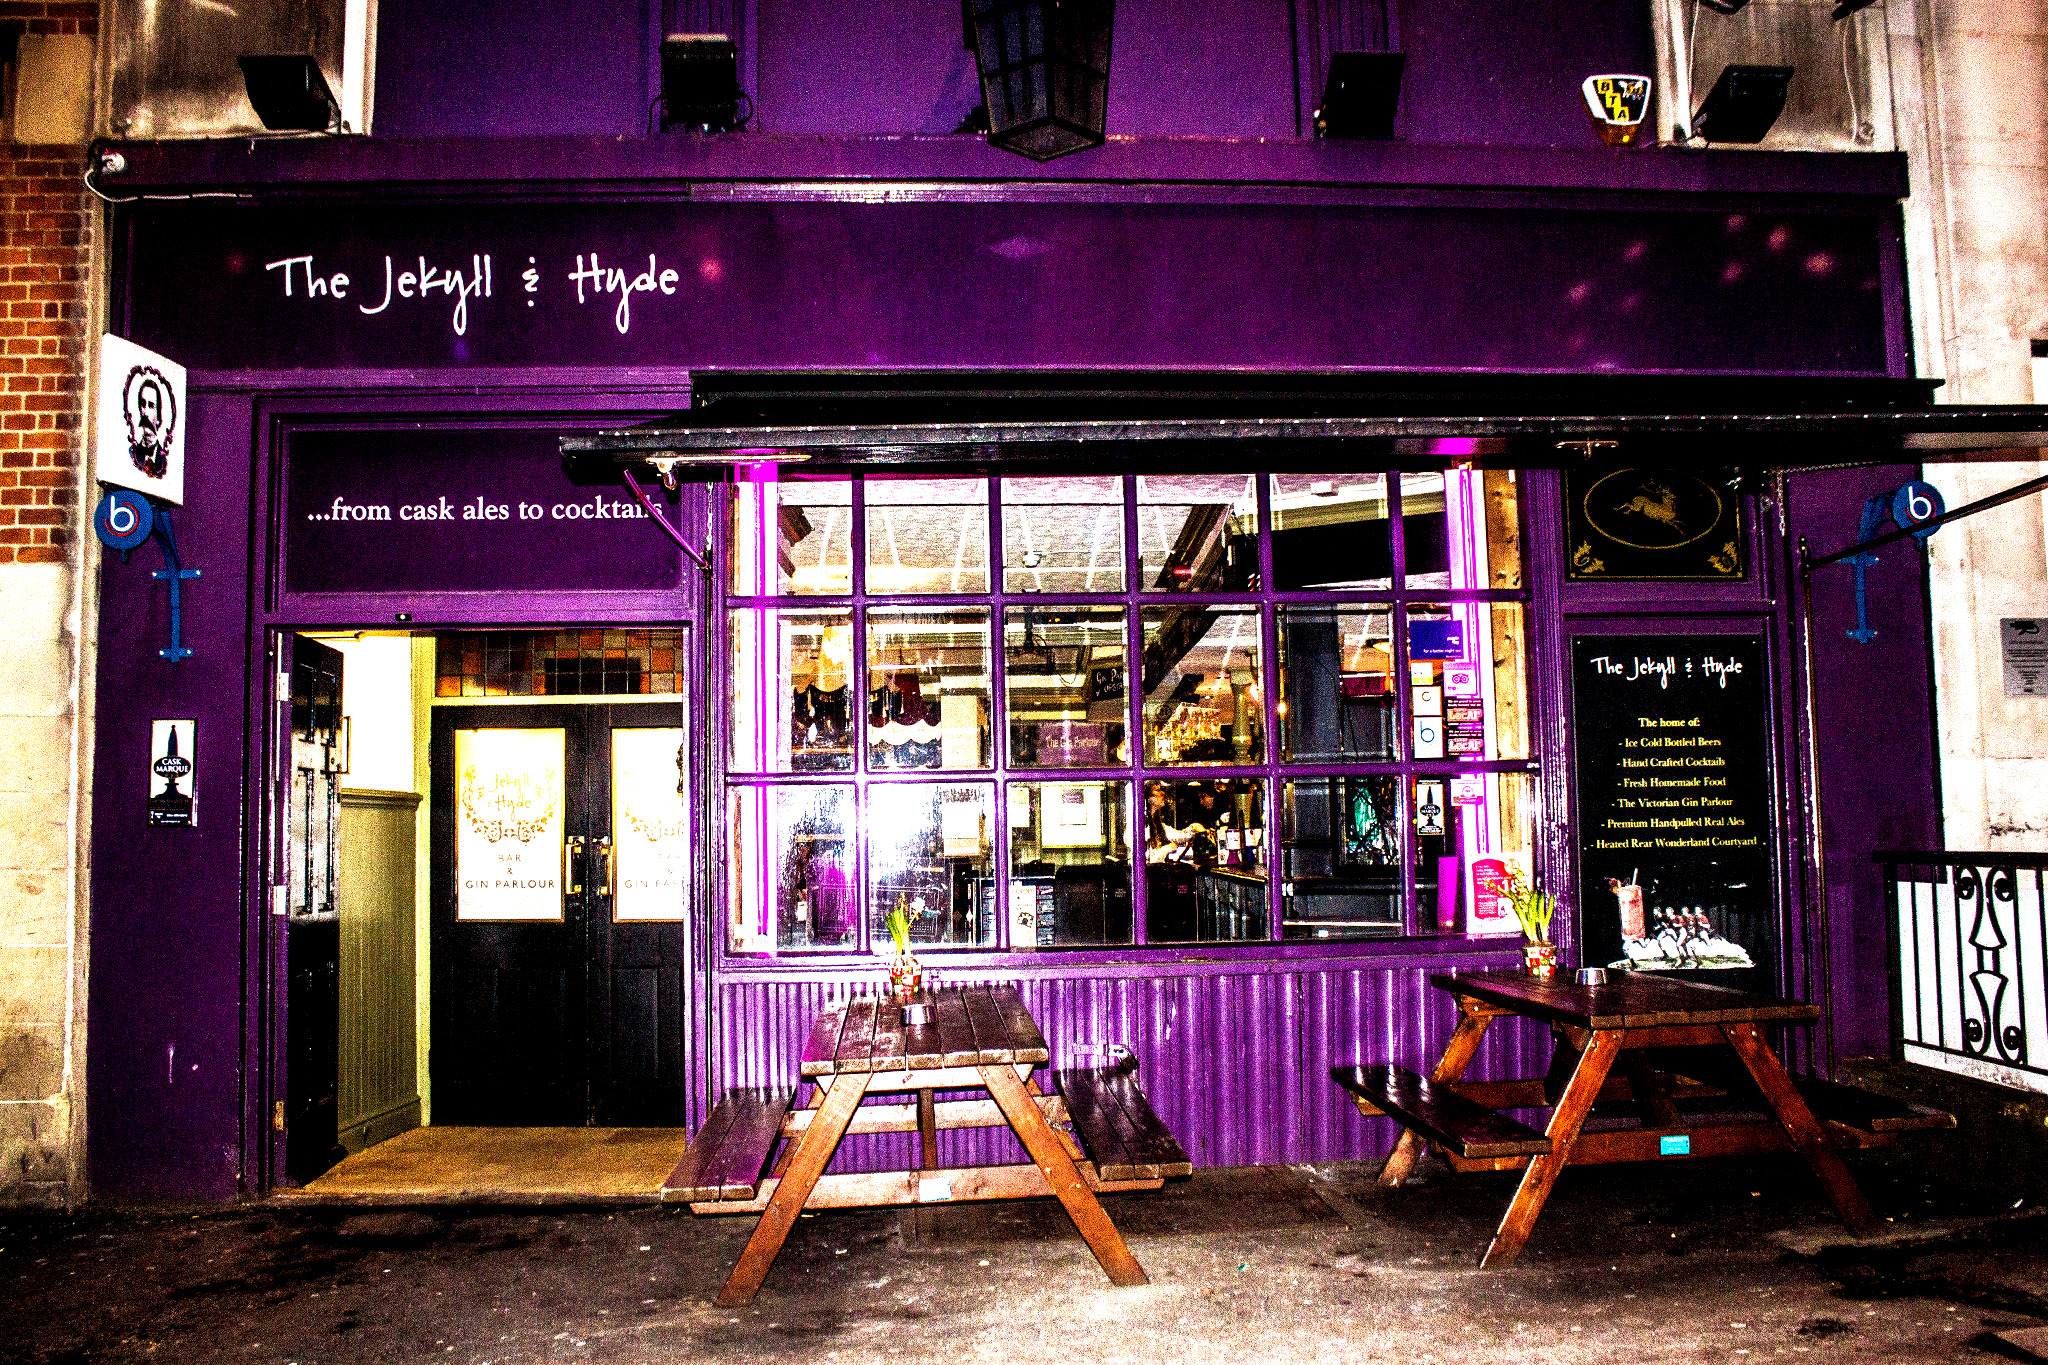 The Jekyll & Hyde, pub